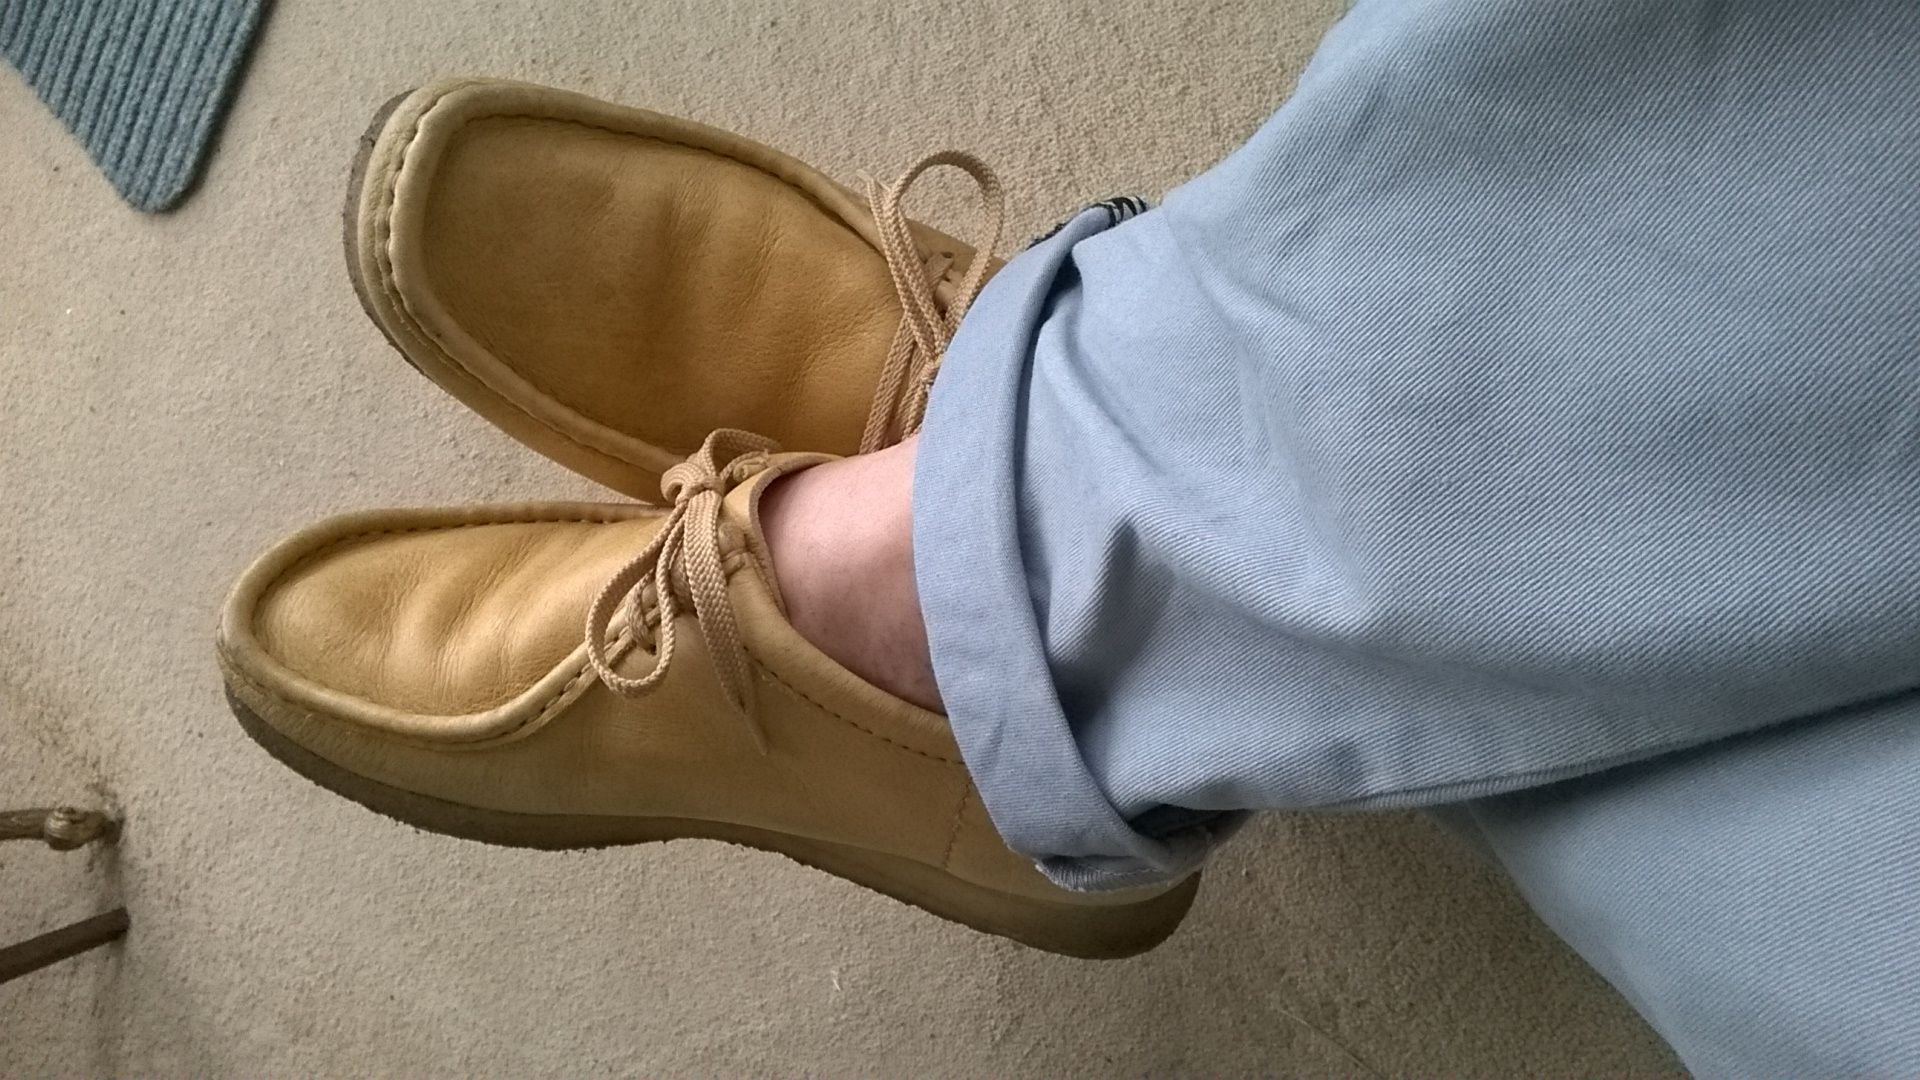 cc72e0e4786 Vintage Clarks wallabees sand leather.   wallabees in 2019   Shoes ...